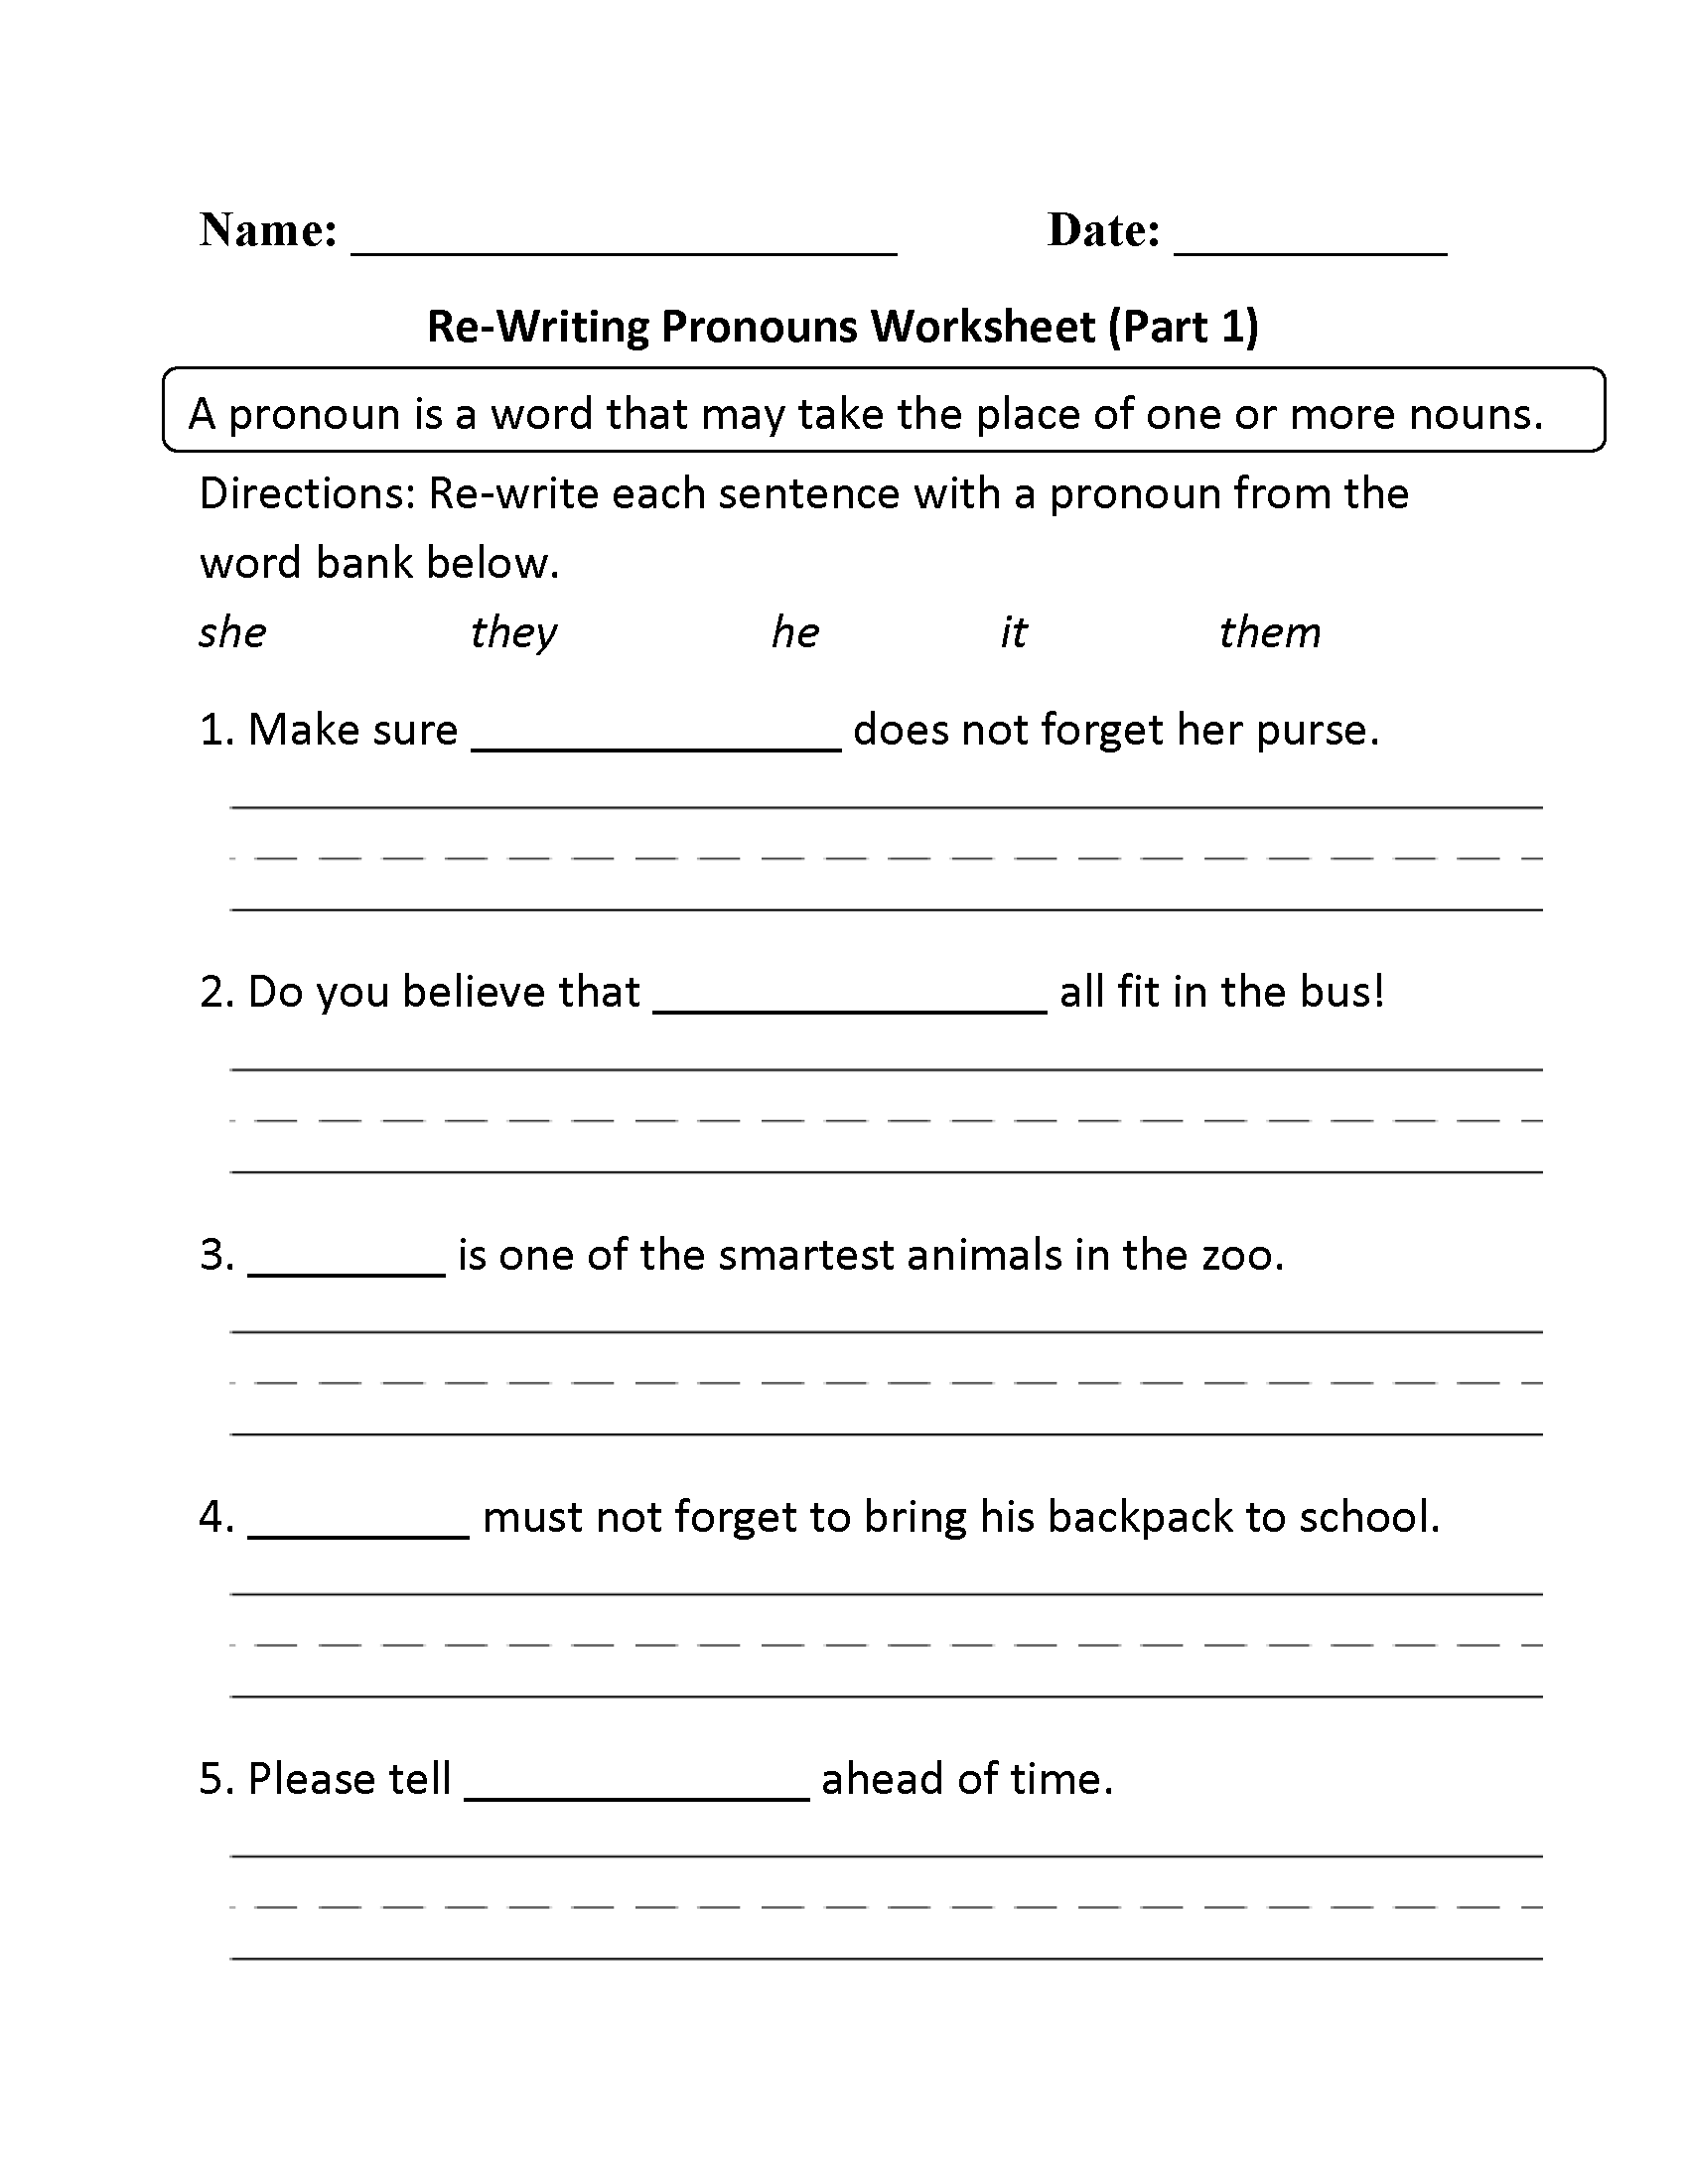 worksheet Pronoun Worksheets 2nd Grade pronouns worksheets regular worksheet part 1